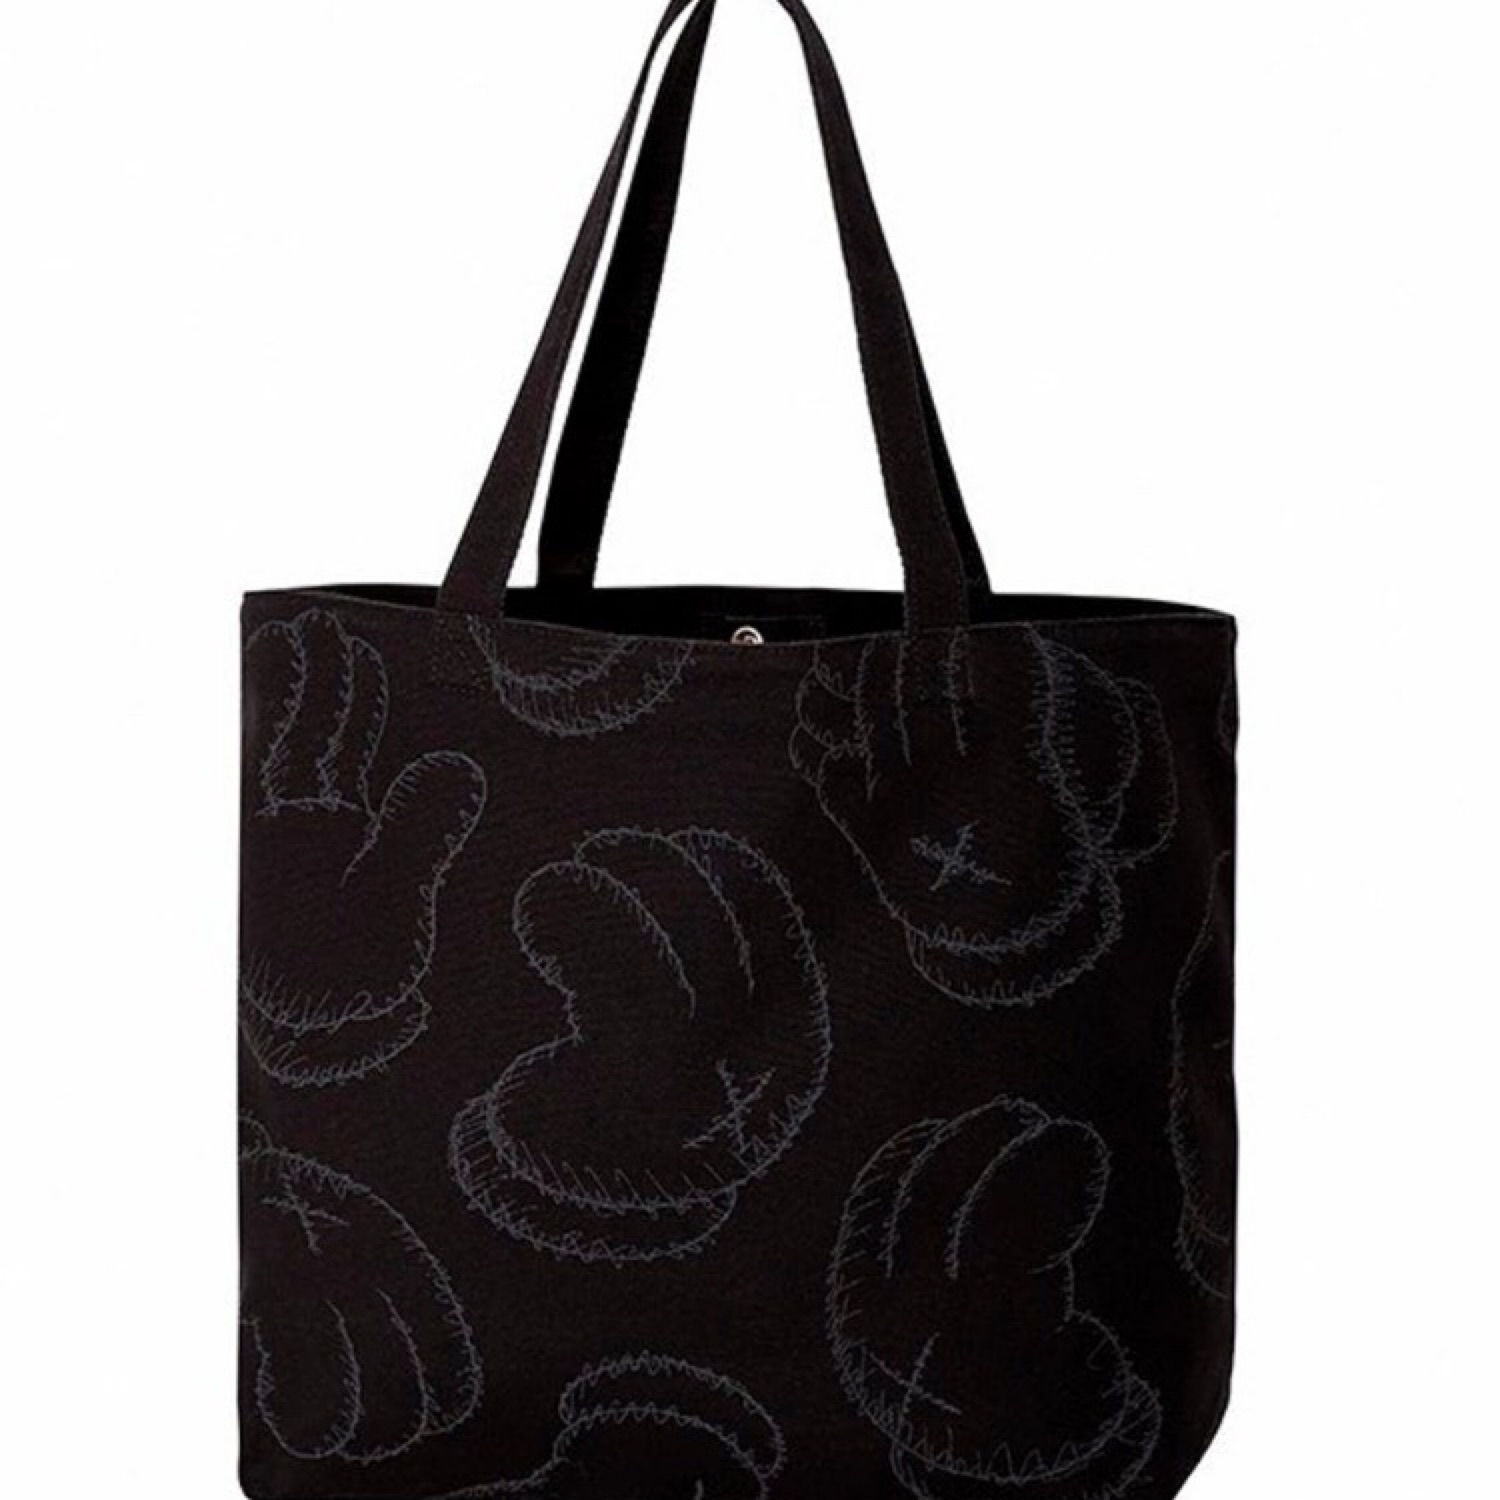 "Kaws X Uniqlo Companion ""Hands"" Tote Bag"